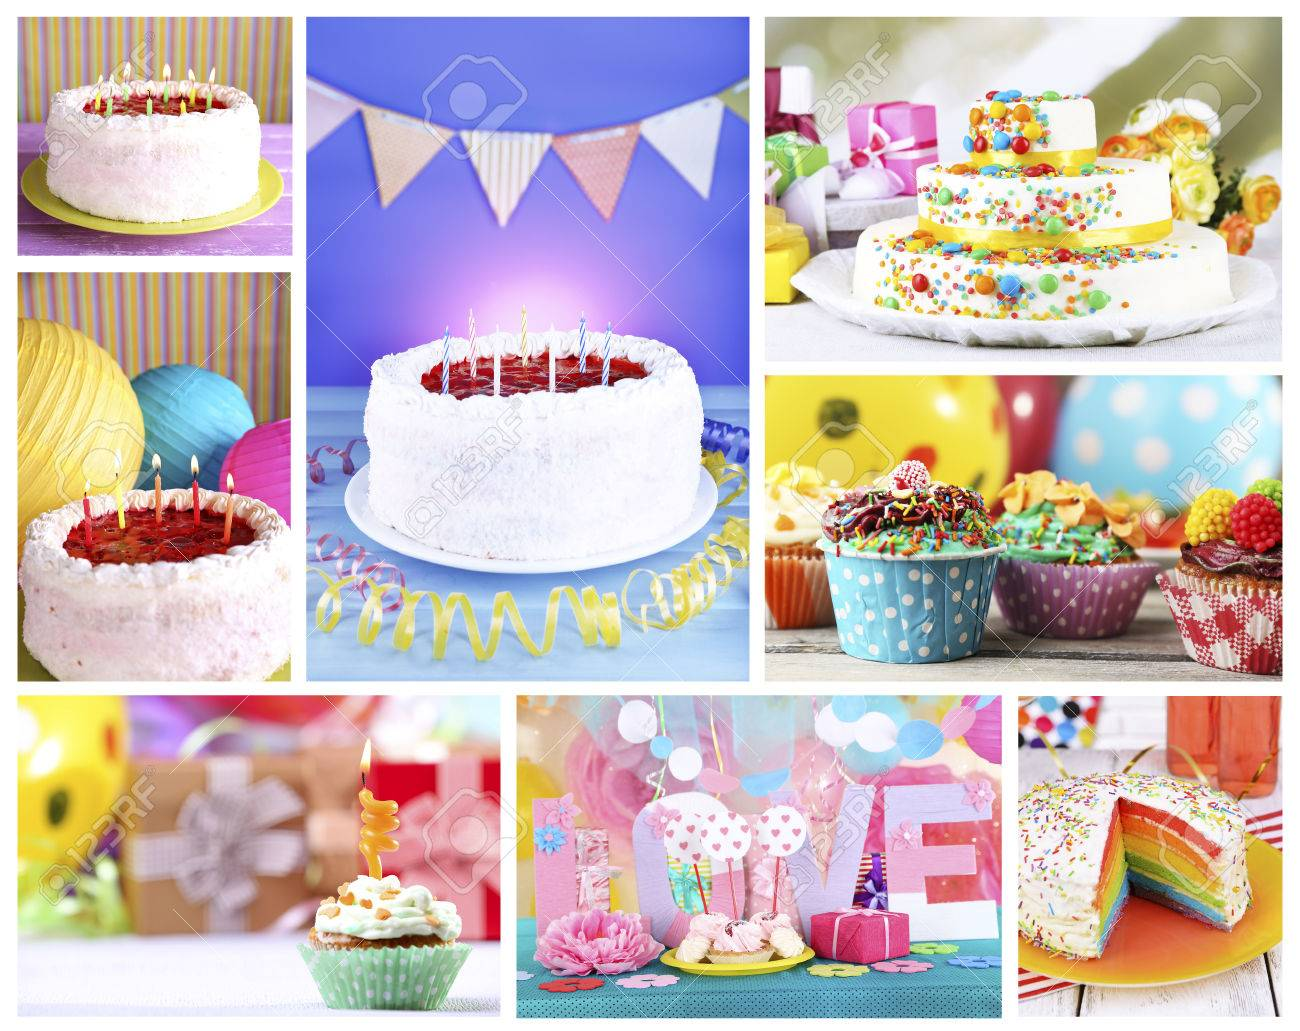 Happy Birthday Collage Stock Photo, Picture And Royalty Free Image ...